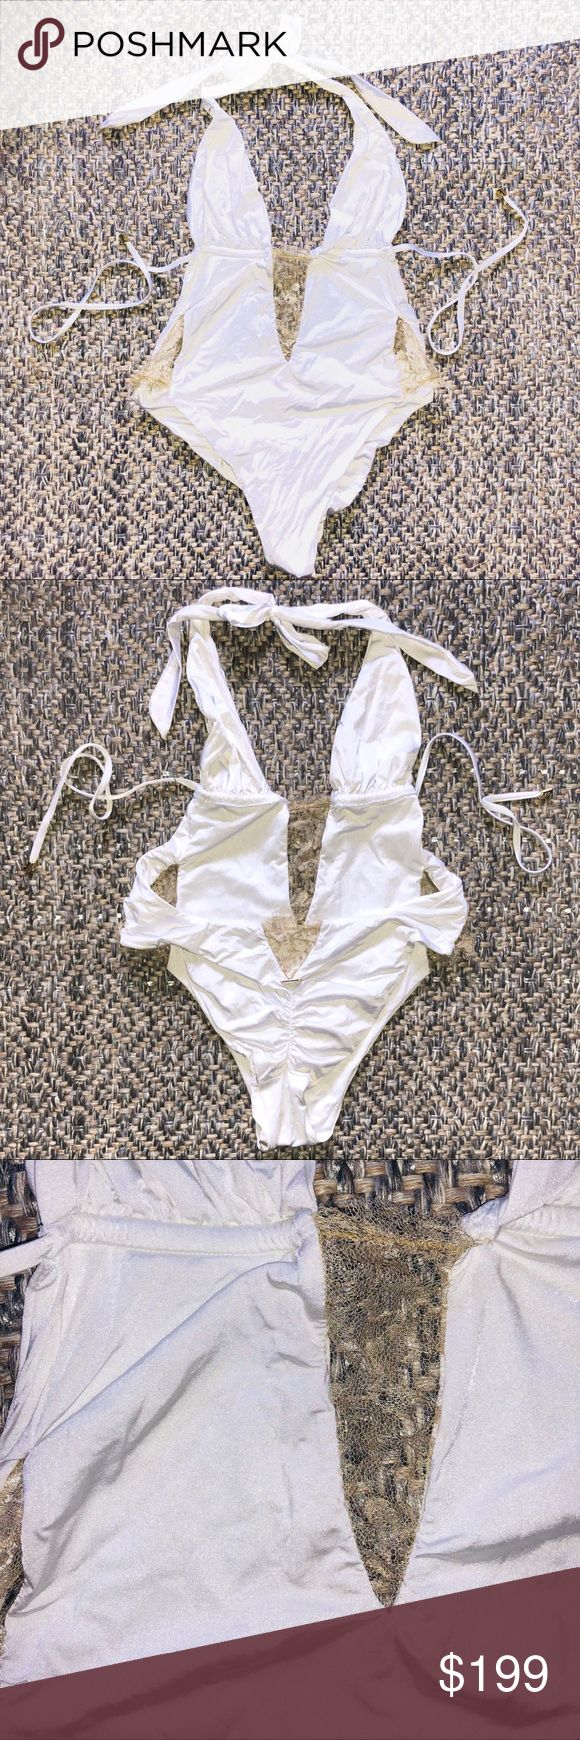 One of a Kind Beach Bunny Swimwear one piece Brand new, never worn Beach Bunny Swimwear one piece swimsuit. Only one made in this color. White with beautiful shimmering gold lace at hips, front and back. Shirred back with gold nameplate. Adjustable tie at bust and neck. Wear high or low on the hips, also looks great as a bodysuit! No tags as this suit was never for sale. Can fit a medium as well.  Box 5 Beach Bunny Swim One Pieces